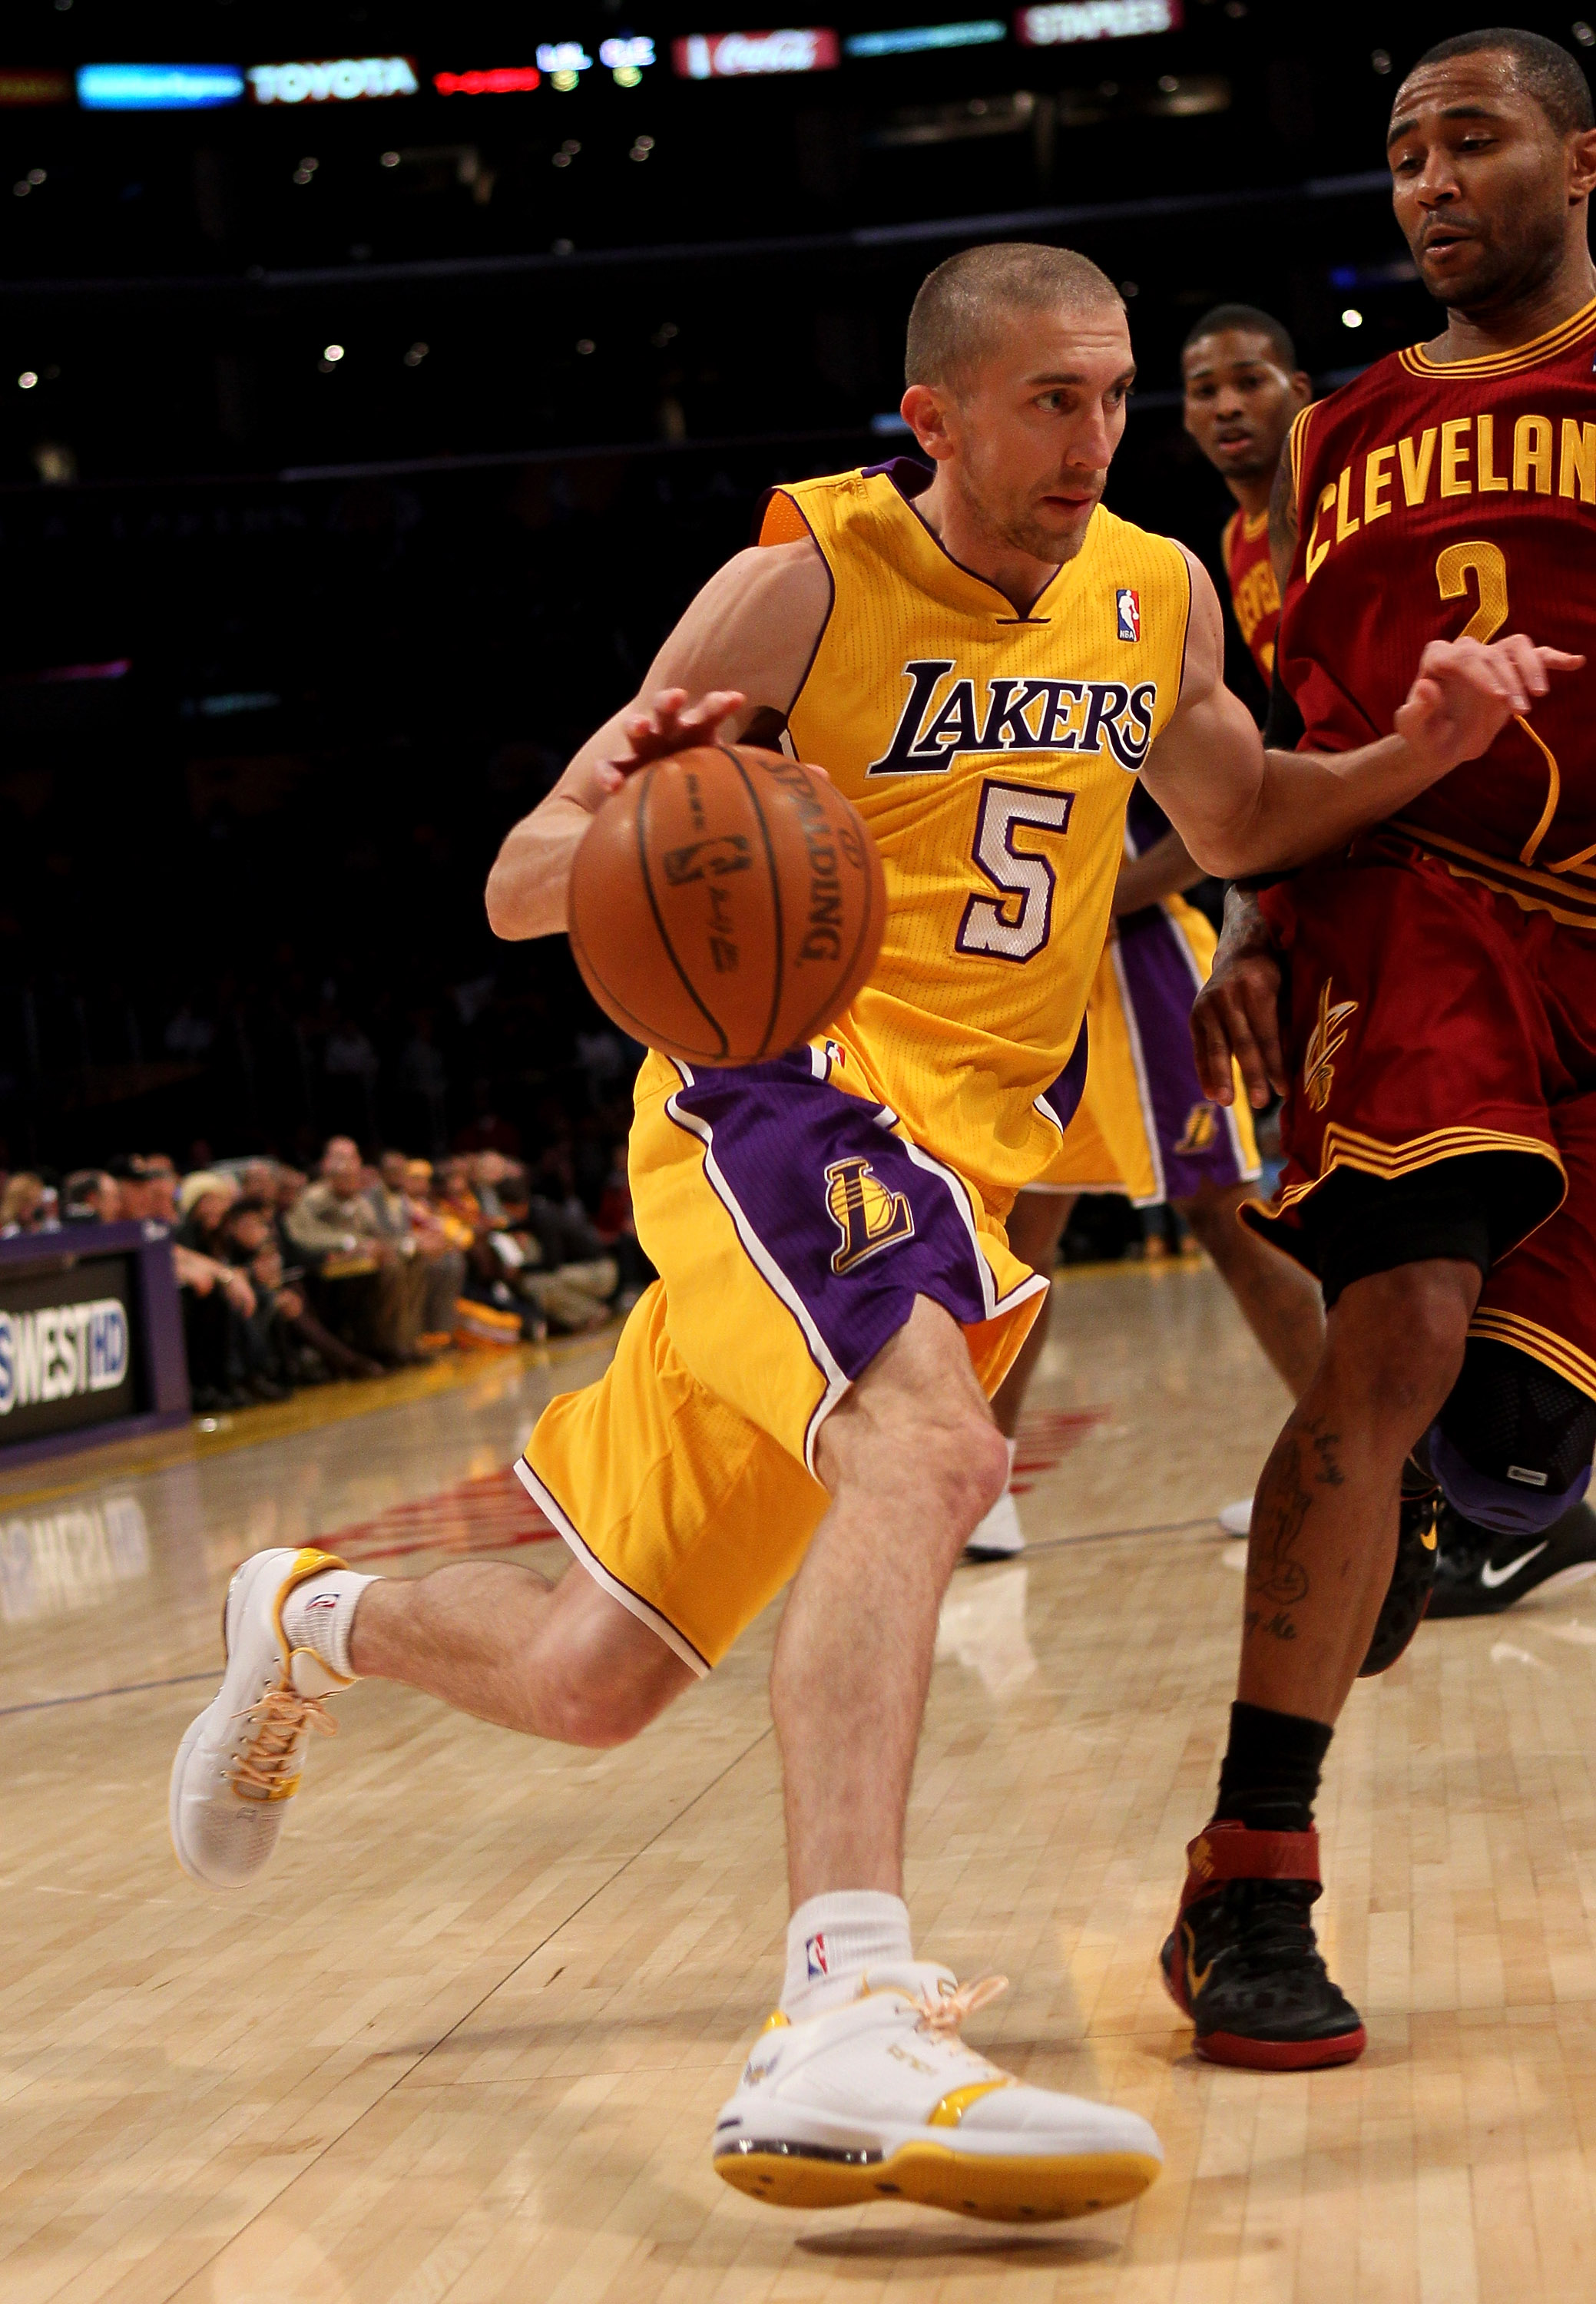 LOS ANGELES, CA - JANUARY 11:  Steve Blake #5 of the Los Angeles Lakers drives against Mo Willimas #2 of the Cleveland Cavaliers at Staples Center on January 11, 2011 in Los Angeles, California.  The Lakers won 112-57.  NOTE TO USER: User expressly acknow